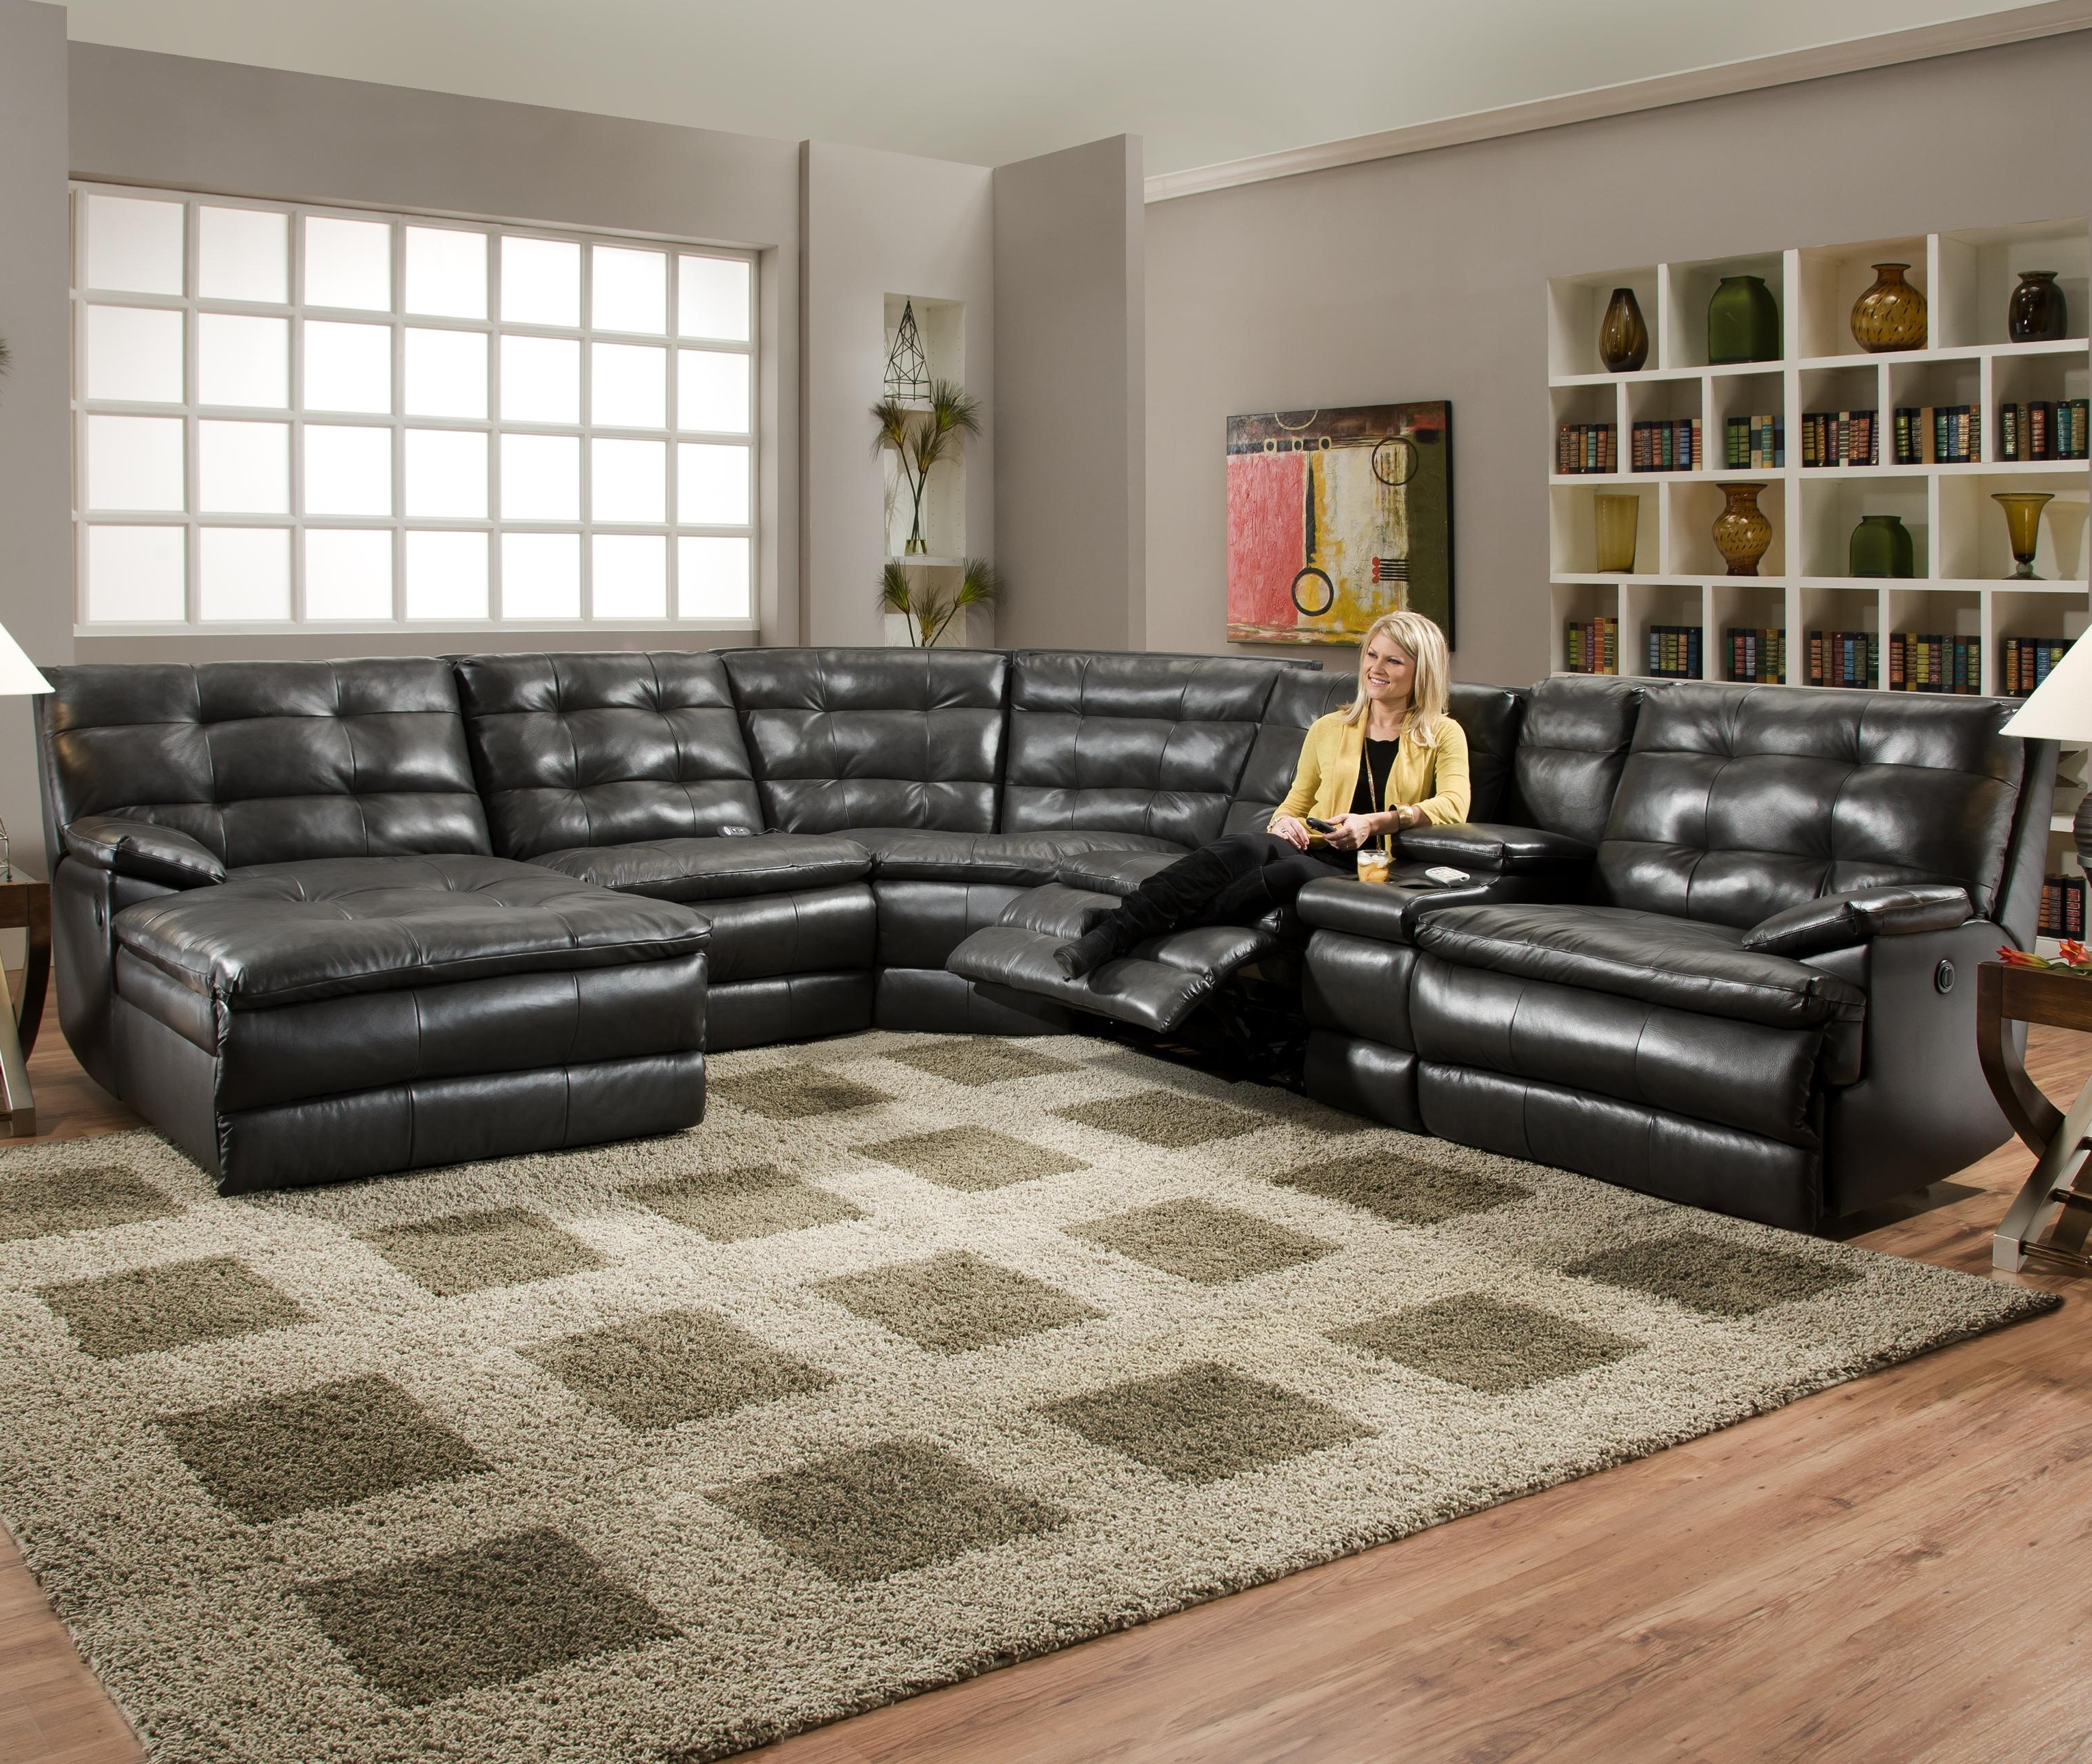 Preferred Leather Motion Sectional Sofas Regarding Luxurious Tufted Leather Sectional Sofa In Classy Black Color With (View 16 of 20)